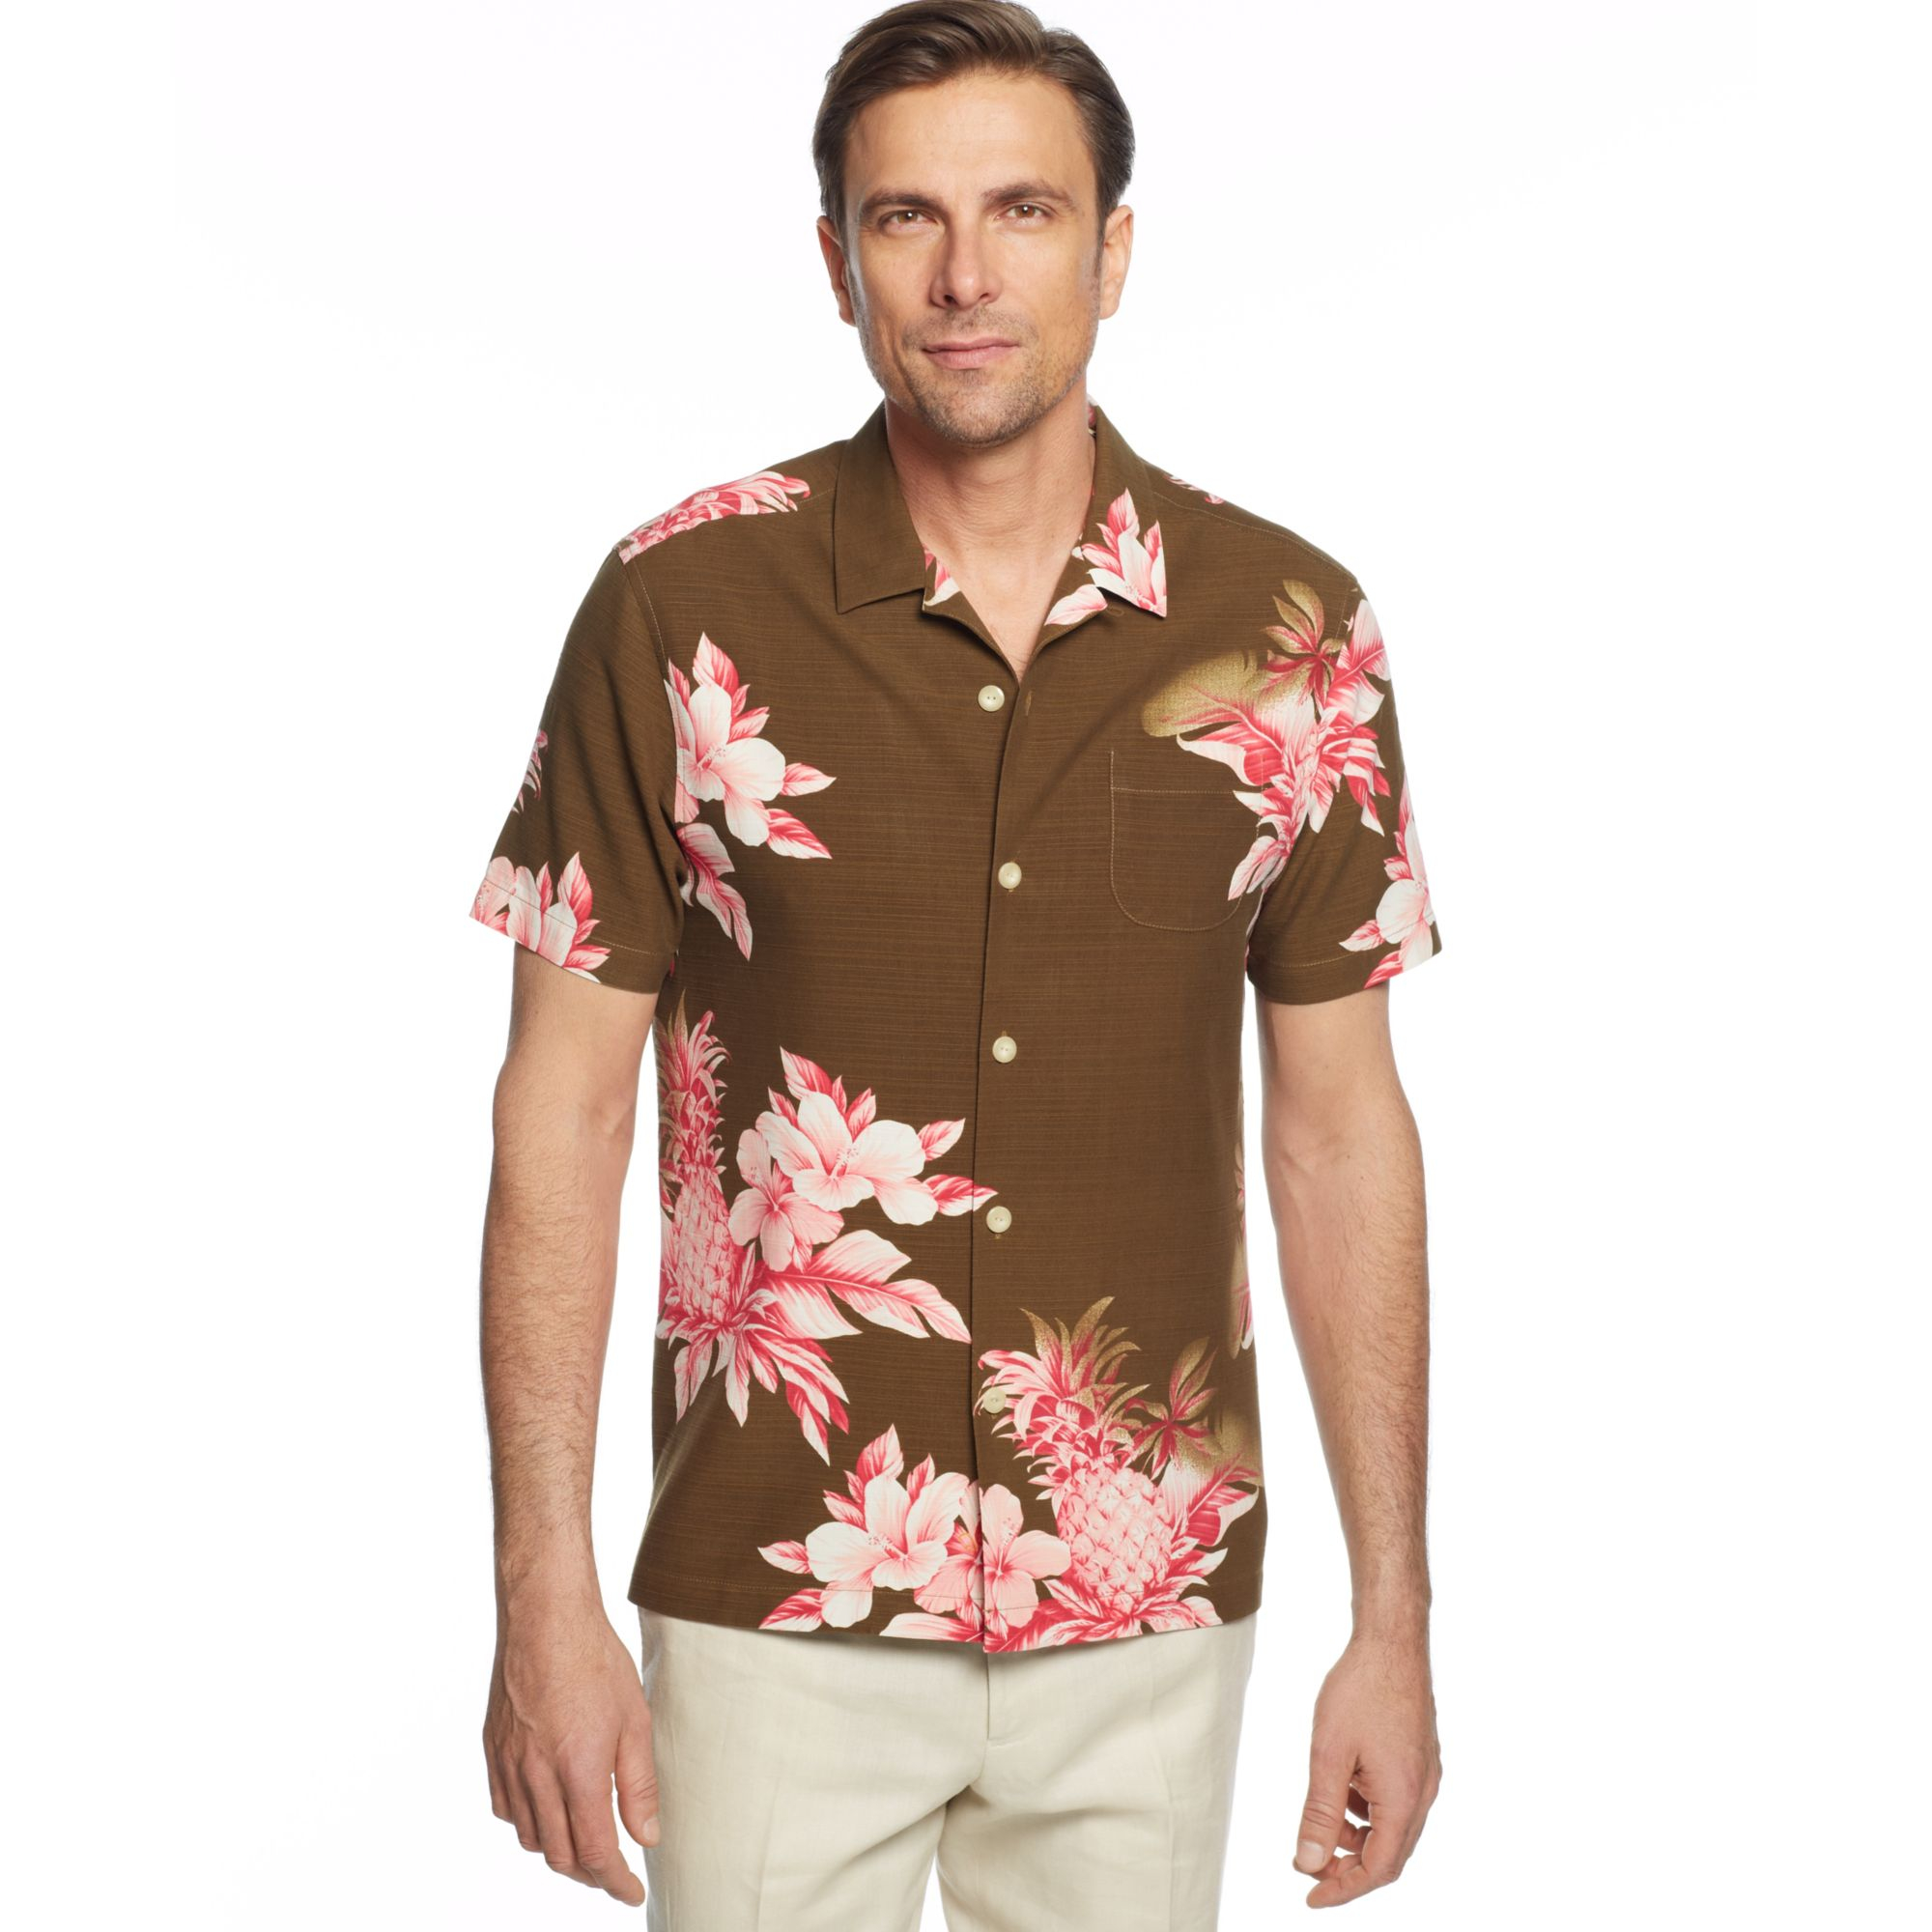 Tommy Bahama Pina Colada Silk Shirt In Pink For Men Cola